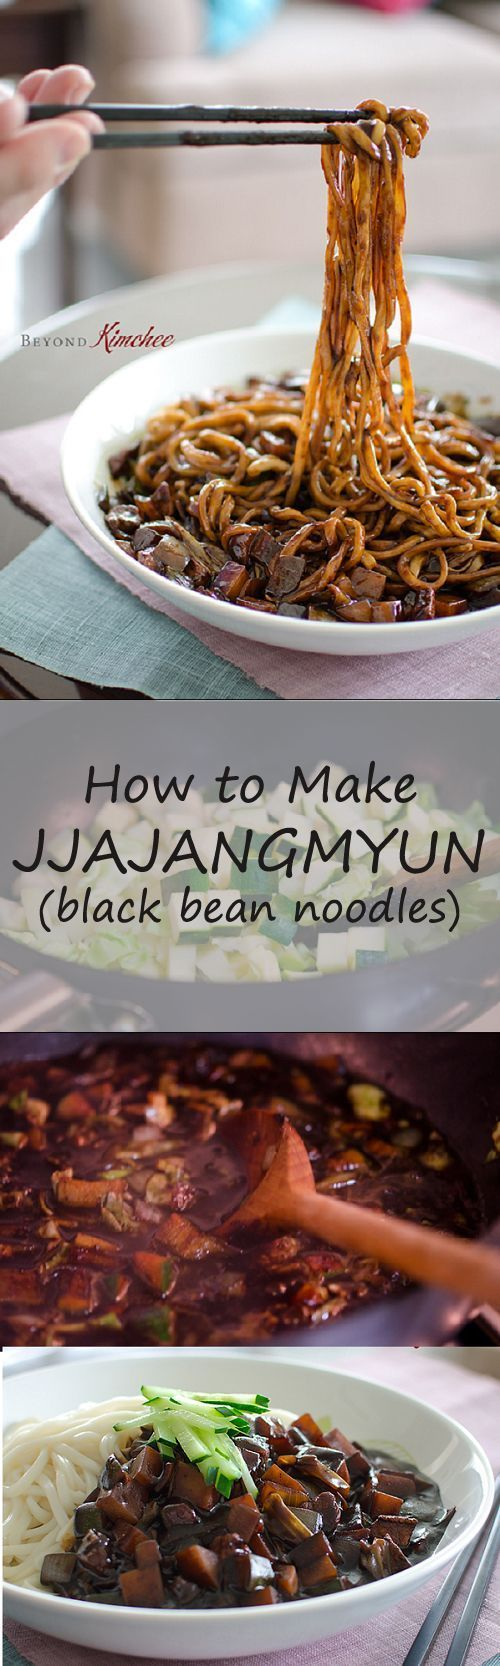 How to make jjajangmyun black bean noodles noodle korean and beans how to make jjajangmyun black bean noodles korean food recipesyummy forumfinder Choice Image